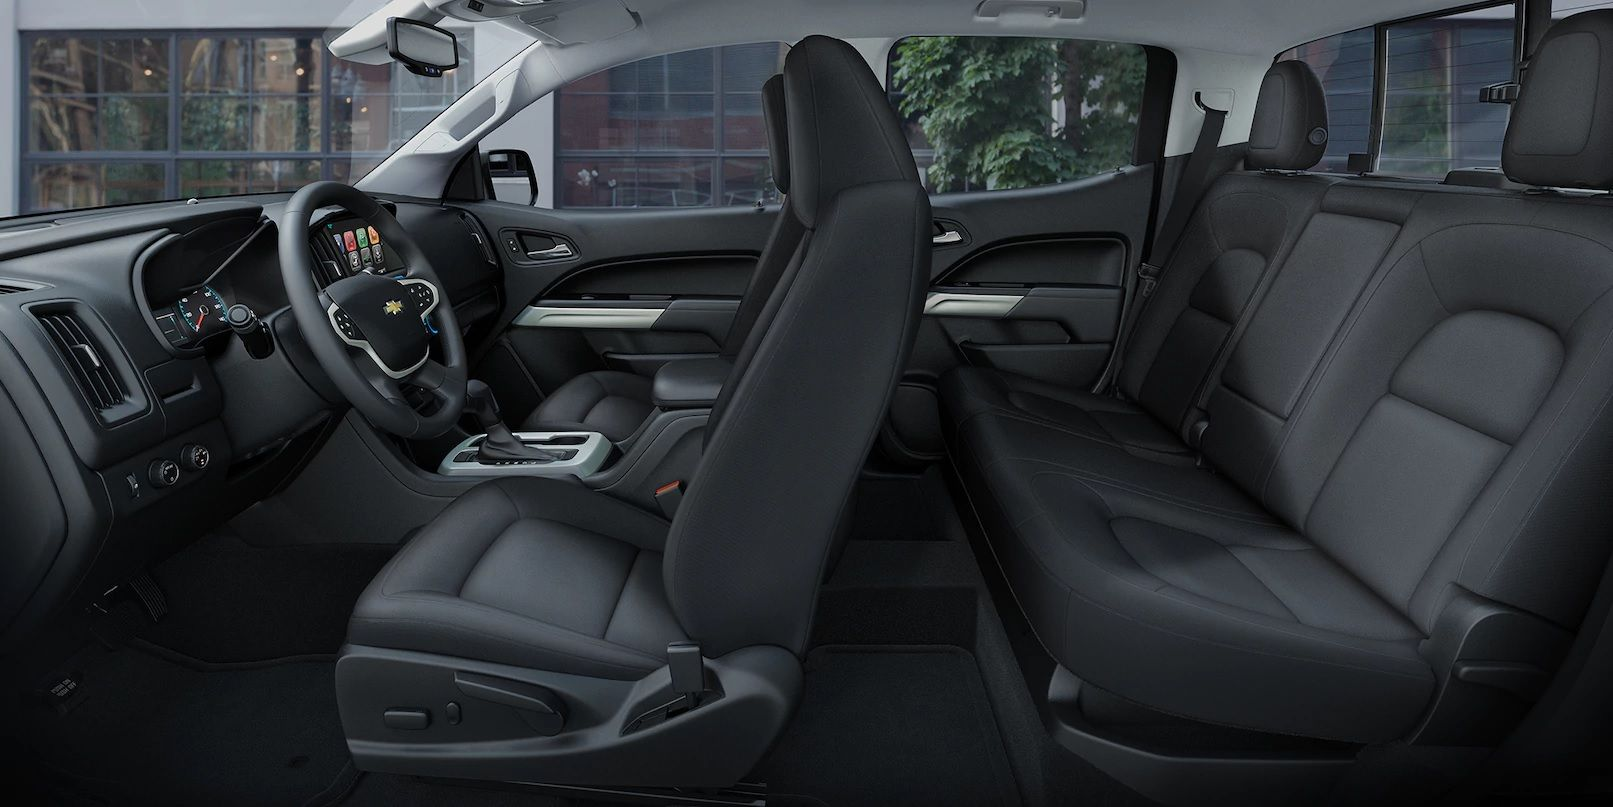 2018 Chevy Colorado Interior Design With Seating Capacity More At